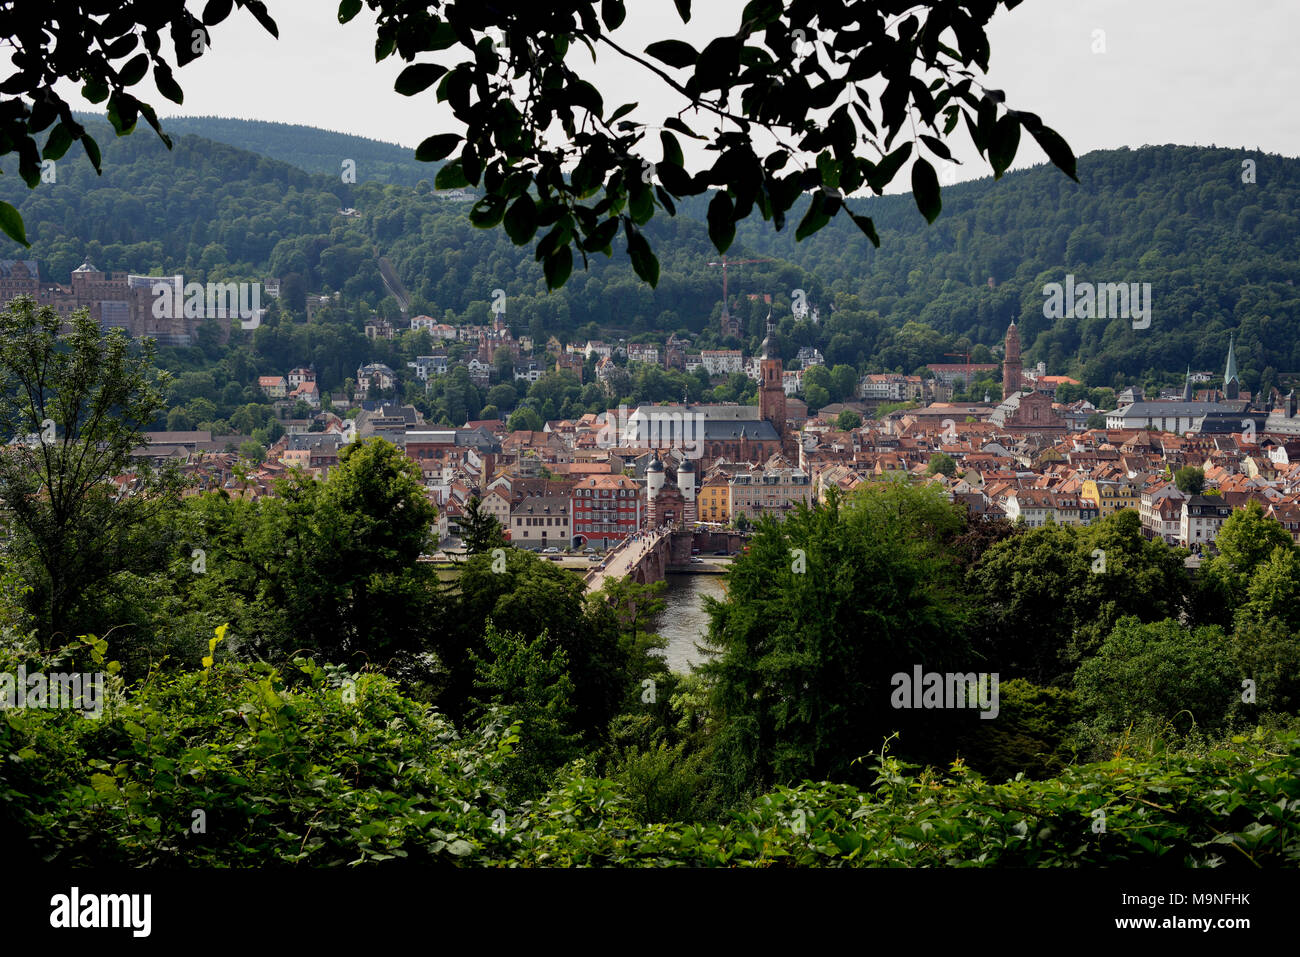 A bridge over the Neckar River in central Heidelberg as seen from the philosopher's walk. Germany. - Stock Image